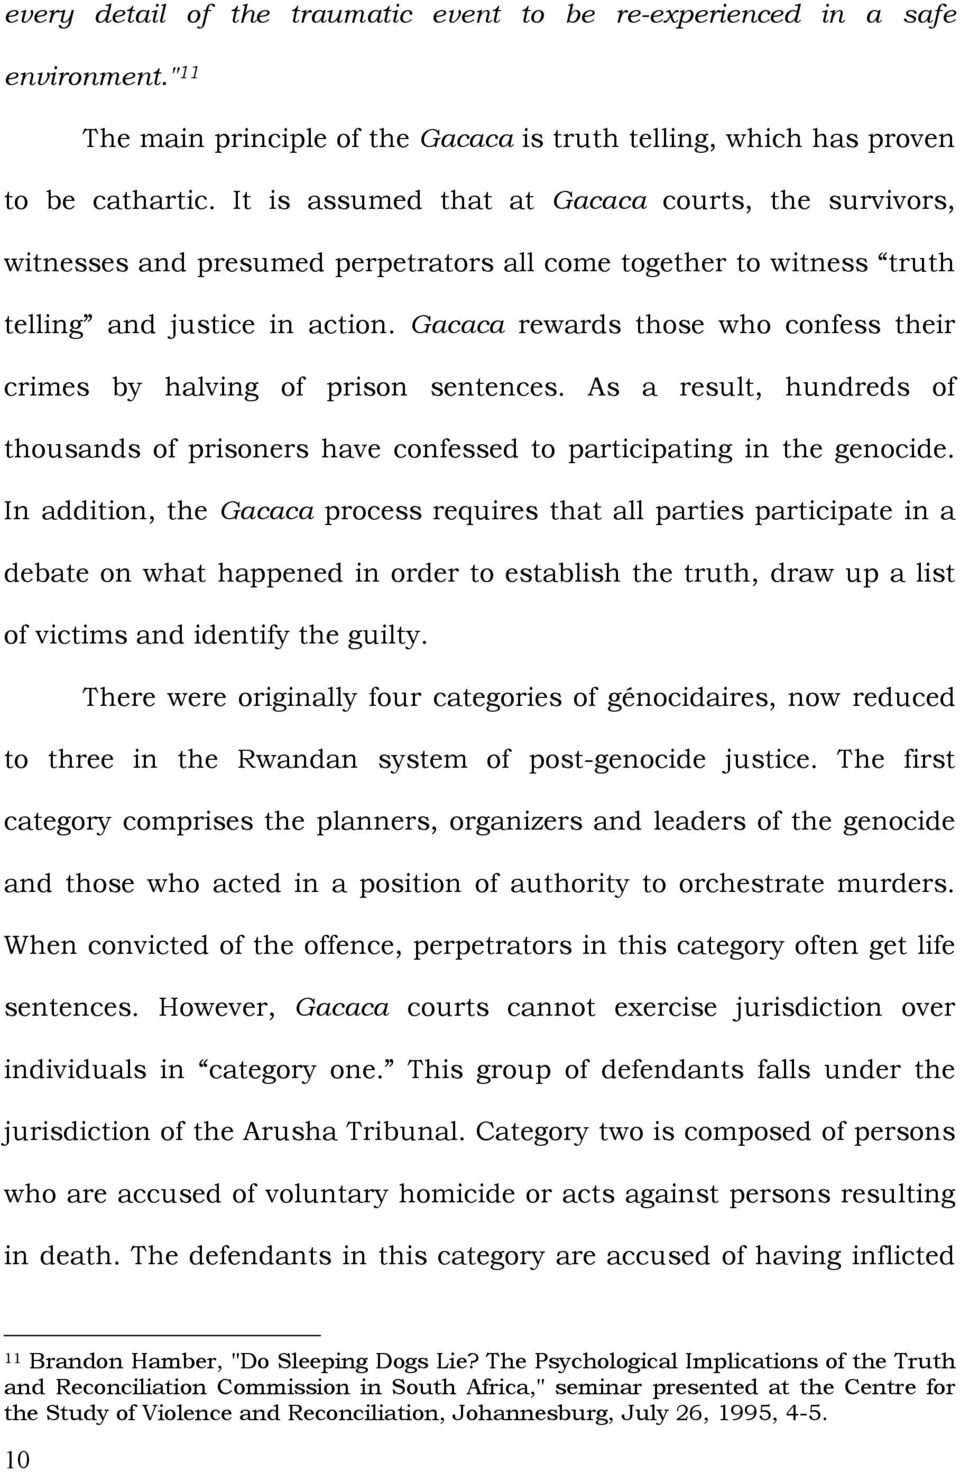 Gacaca rewards those who confess their crimes by halving of prison sentences. As a result, hundreds of thousands of prisoners have confessed to participating in the genocide.